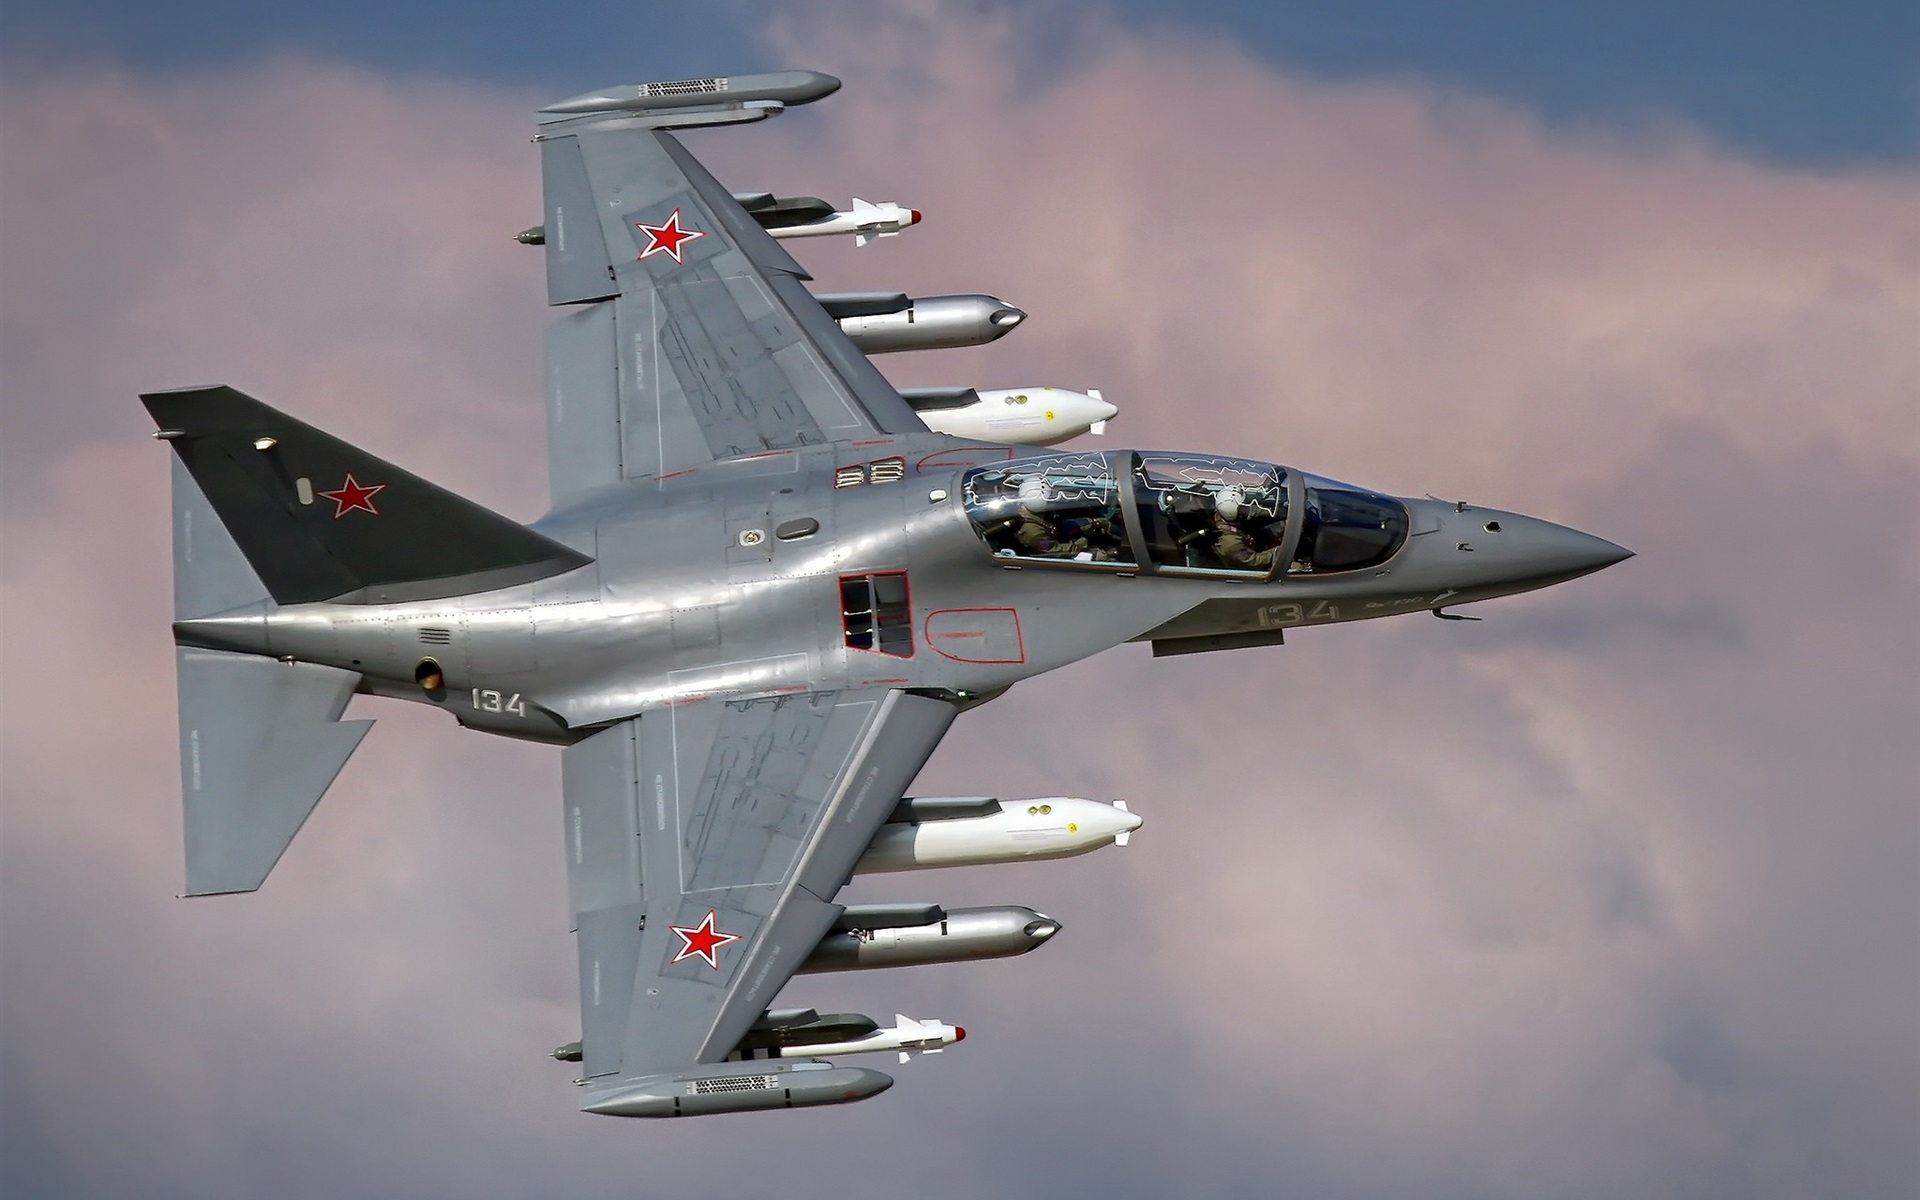 Wallpaper Russian Air Force Yak 130 Fighter 1920x1200 HD Picture Image